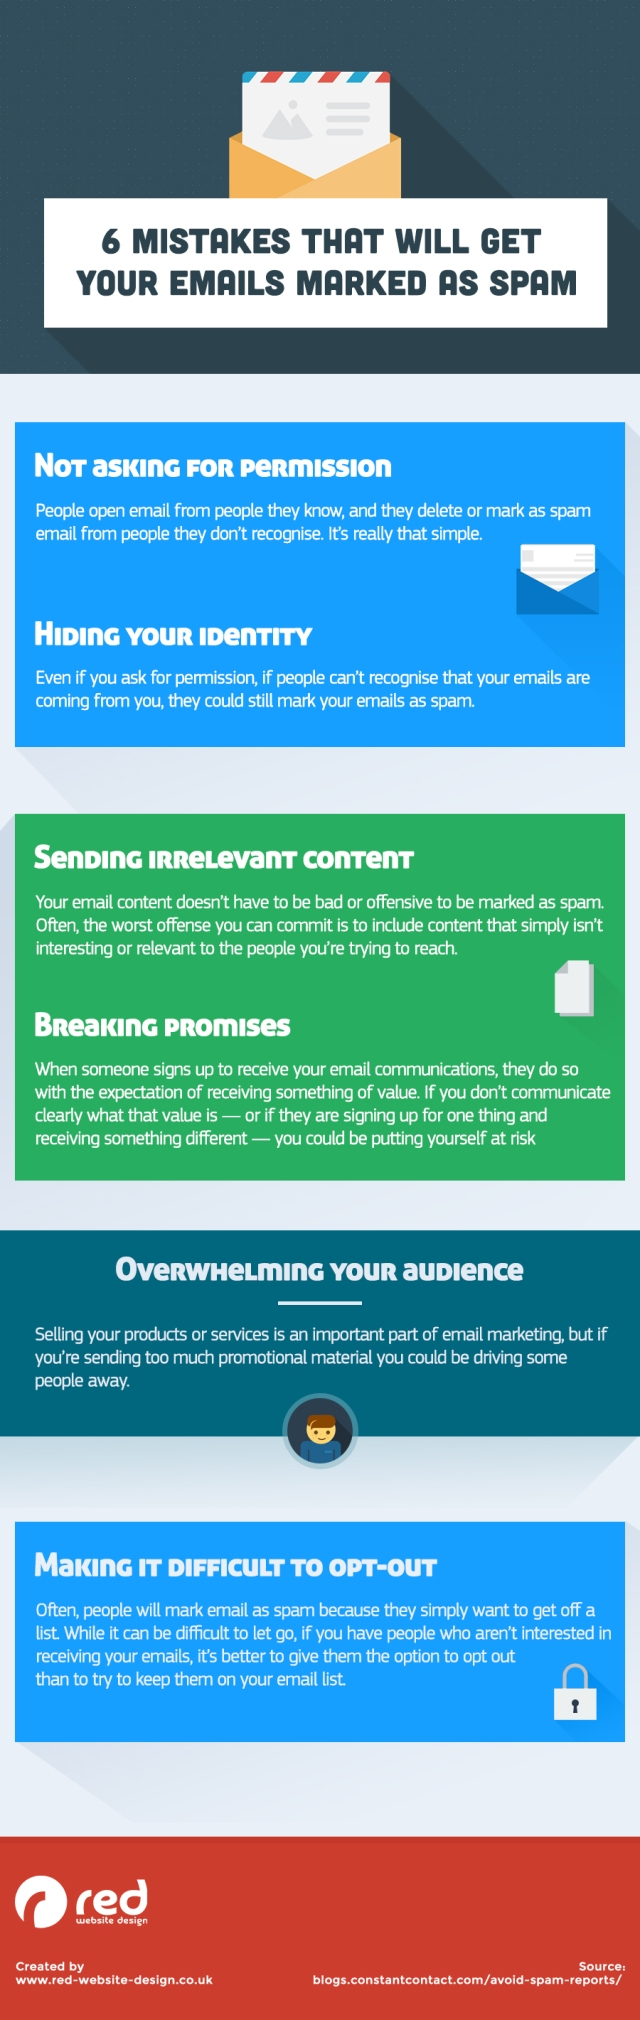 Email Marketing 6 Mistakes That Will Get Your Emails Marked as Spam